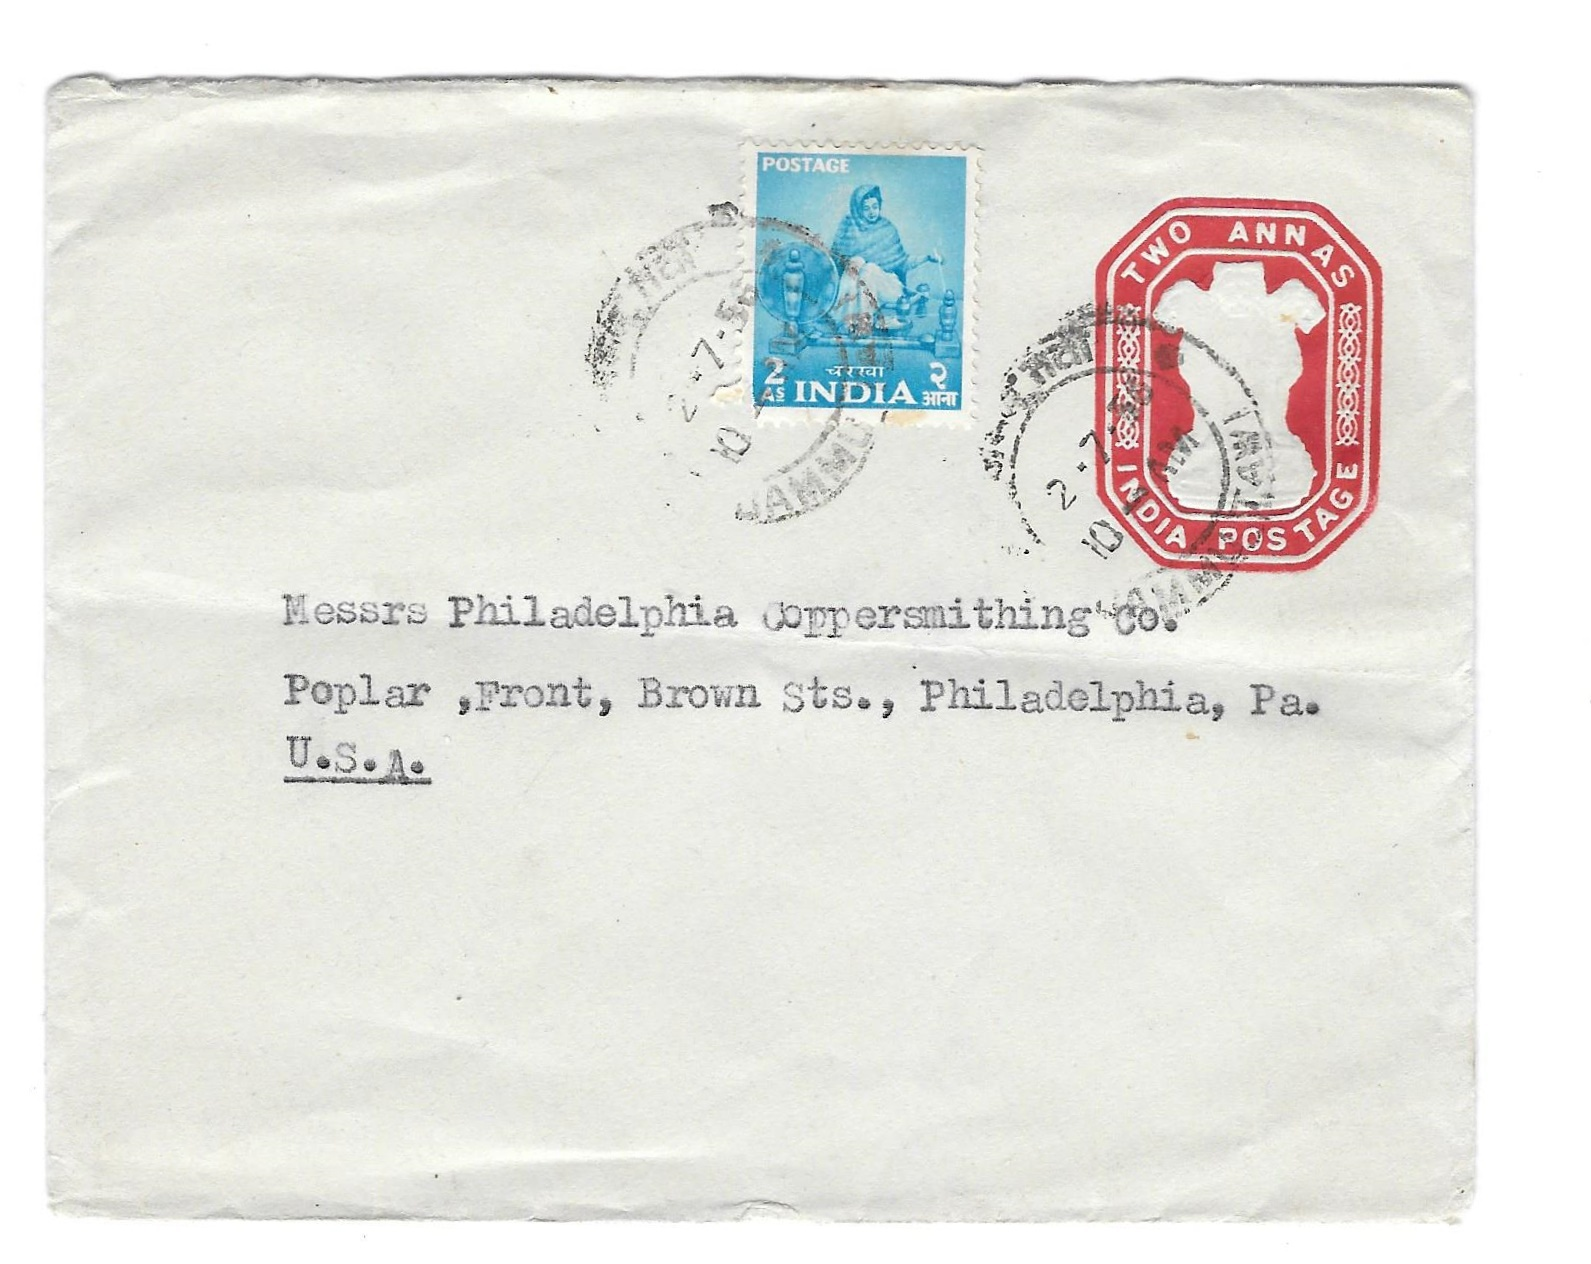 India 1956 2 Anna Stamped Envelope Postal Stationery uprated w Sc 258 to US